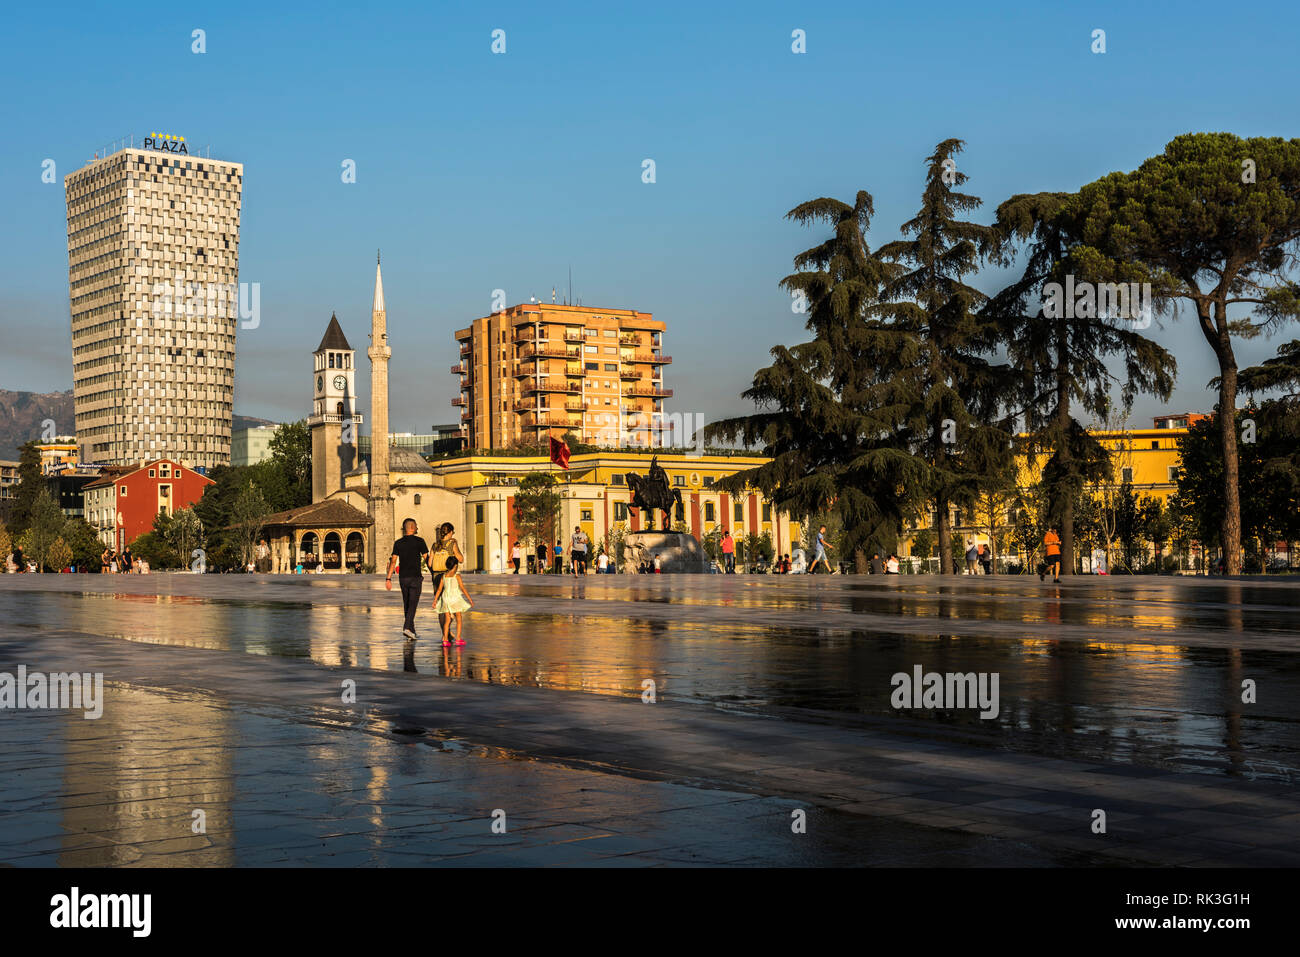 Young family and other locals at Skanderbeg Square in front of the Skanderbeg statue, Et'hem Bey Mosque and a Hotel, Tirana, Albania - Stock Image